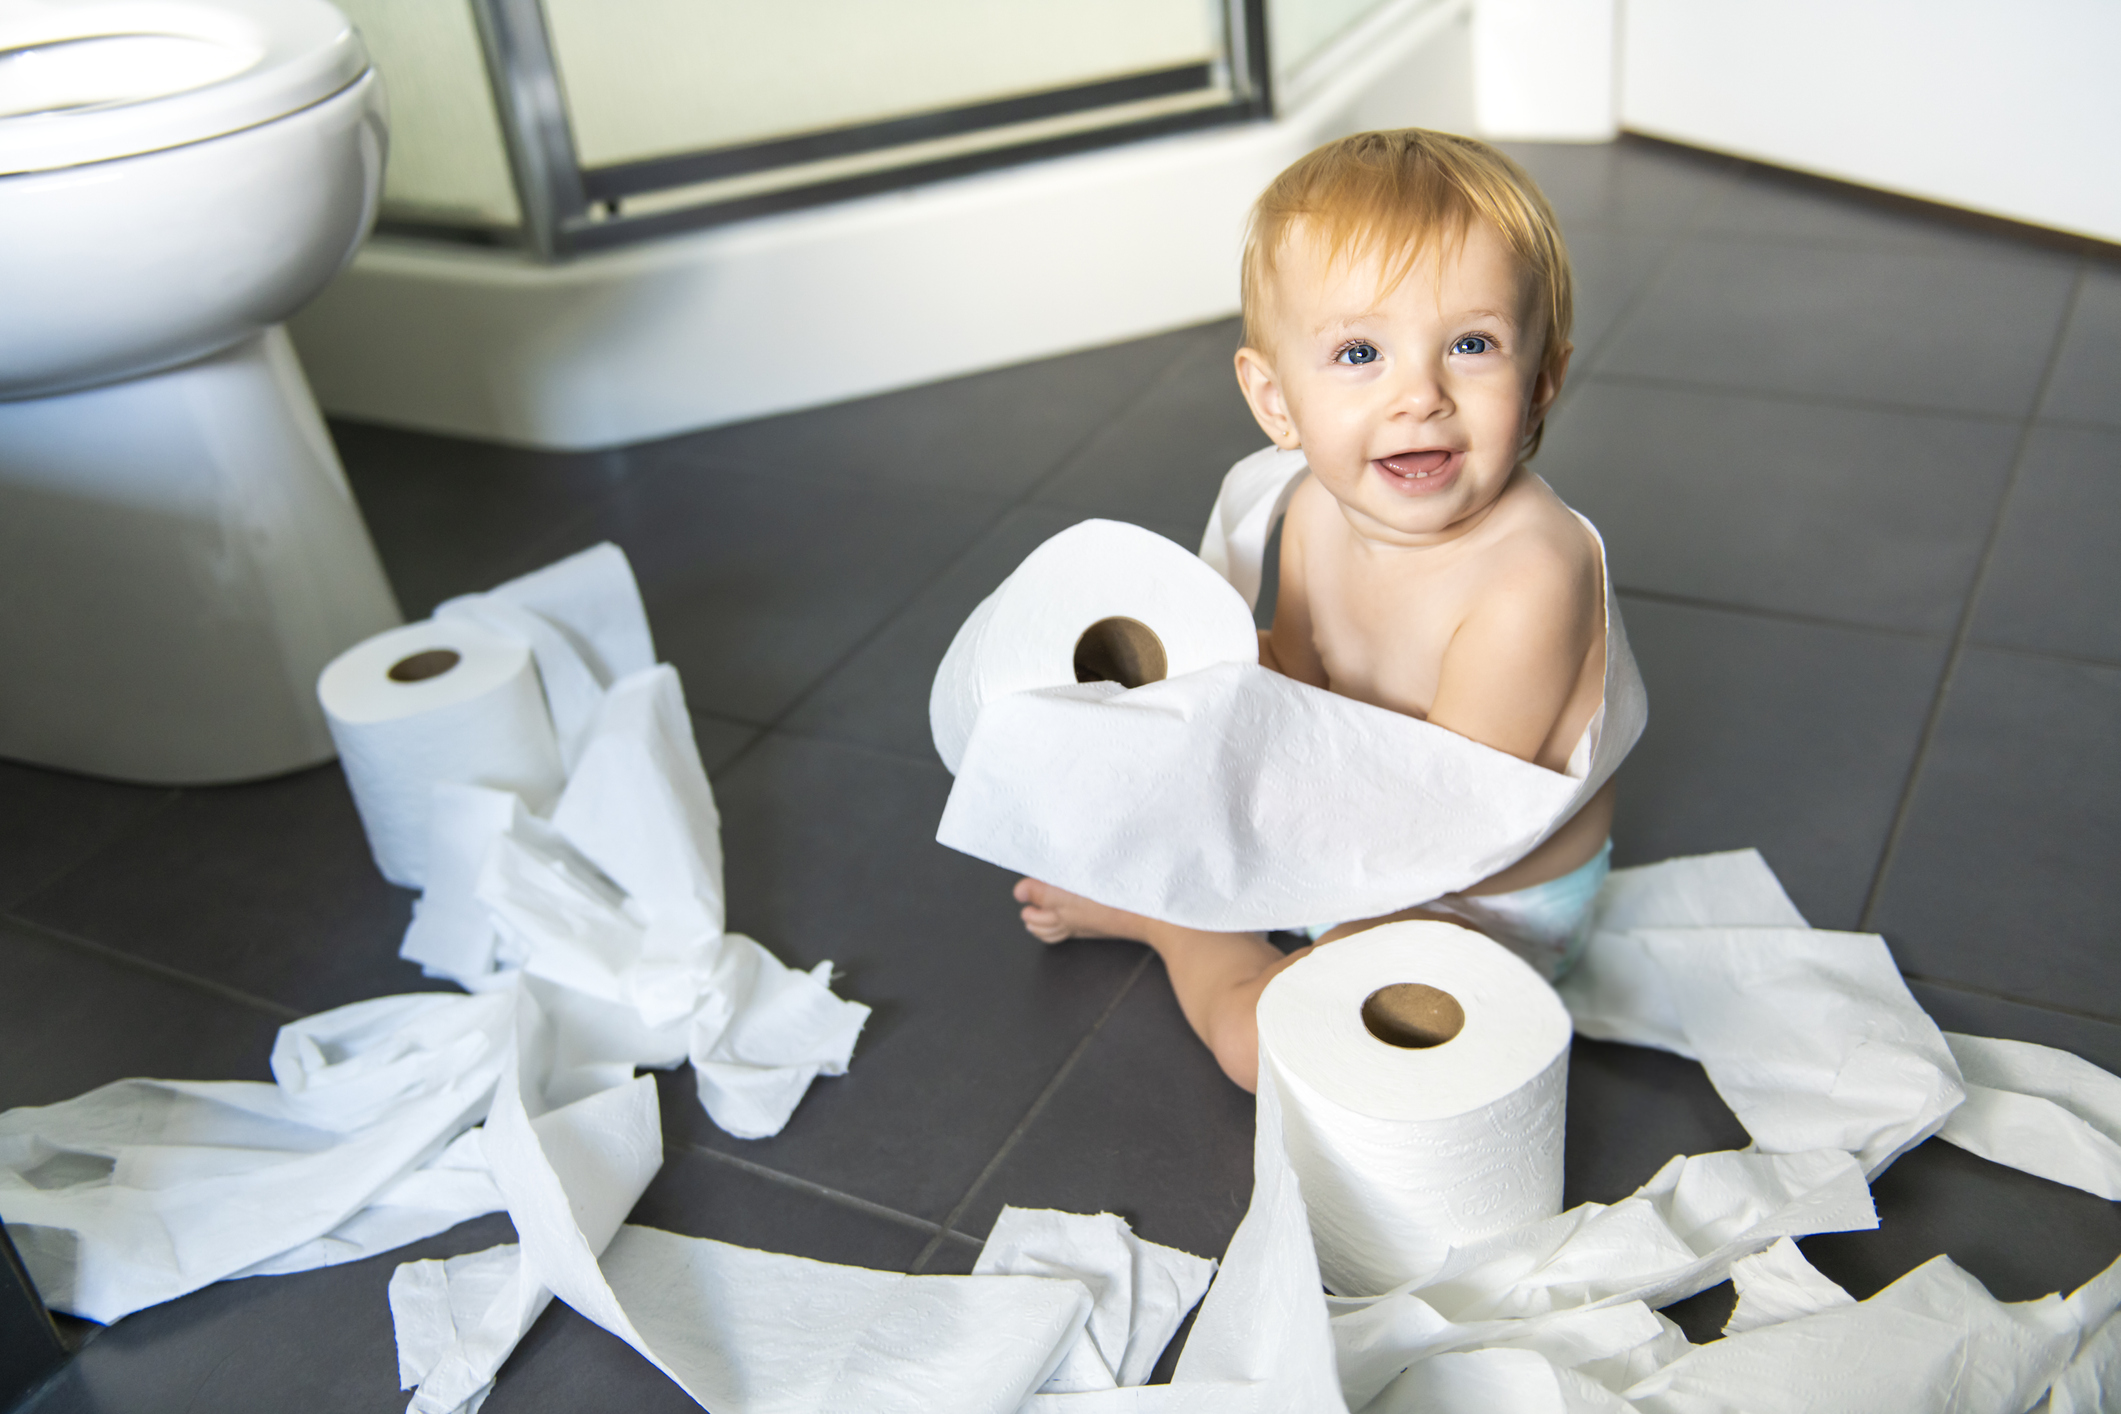 Toilet terrors of the toddler type